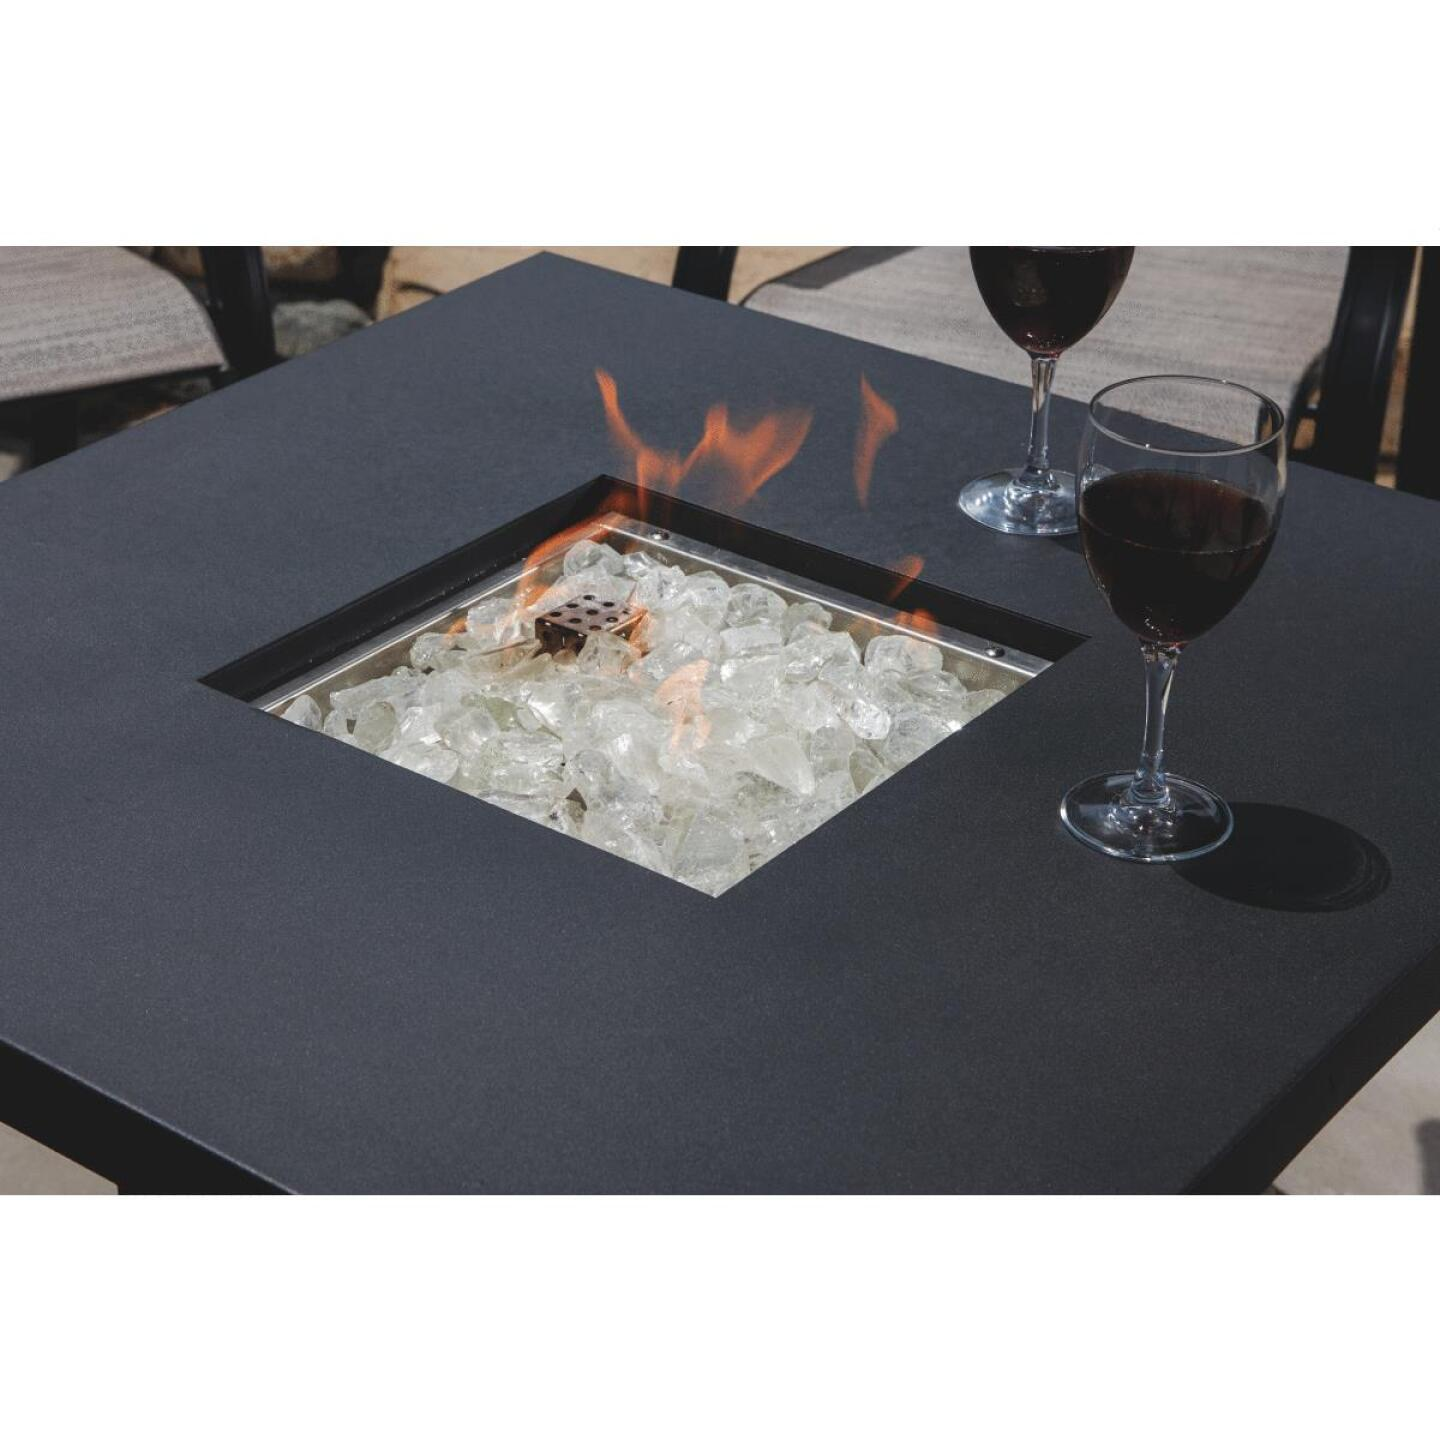 Hiland 30 In. Square Fire Pit Image 4